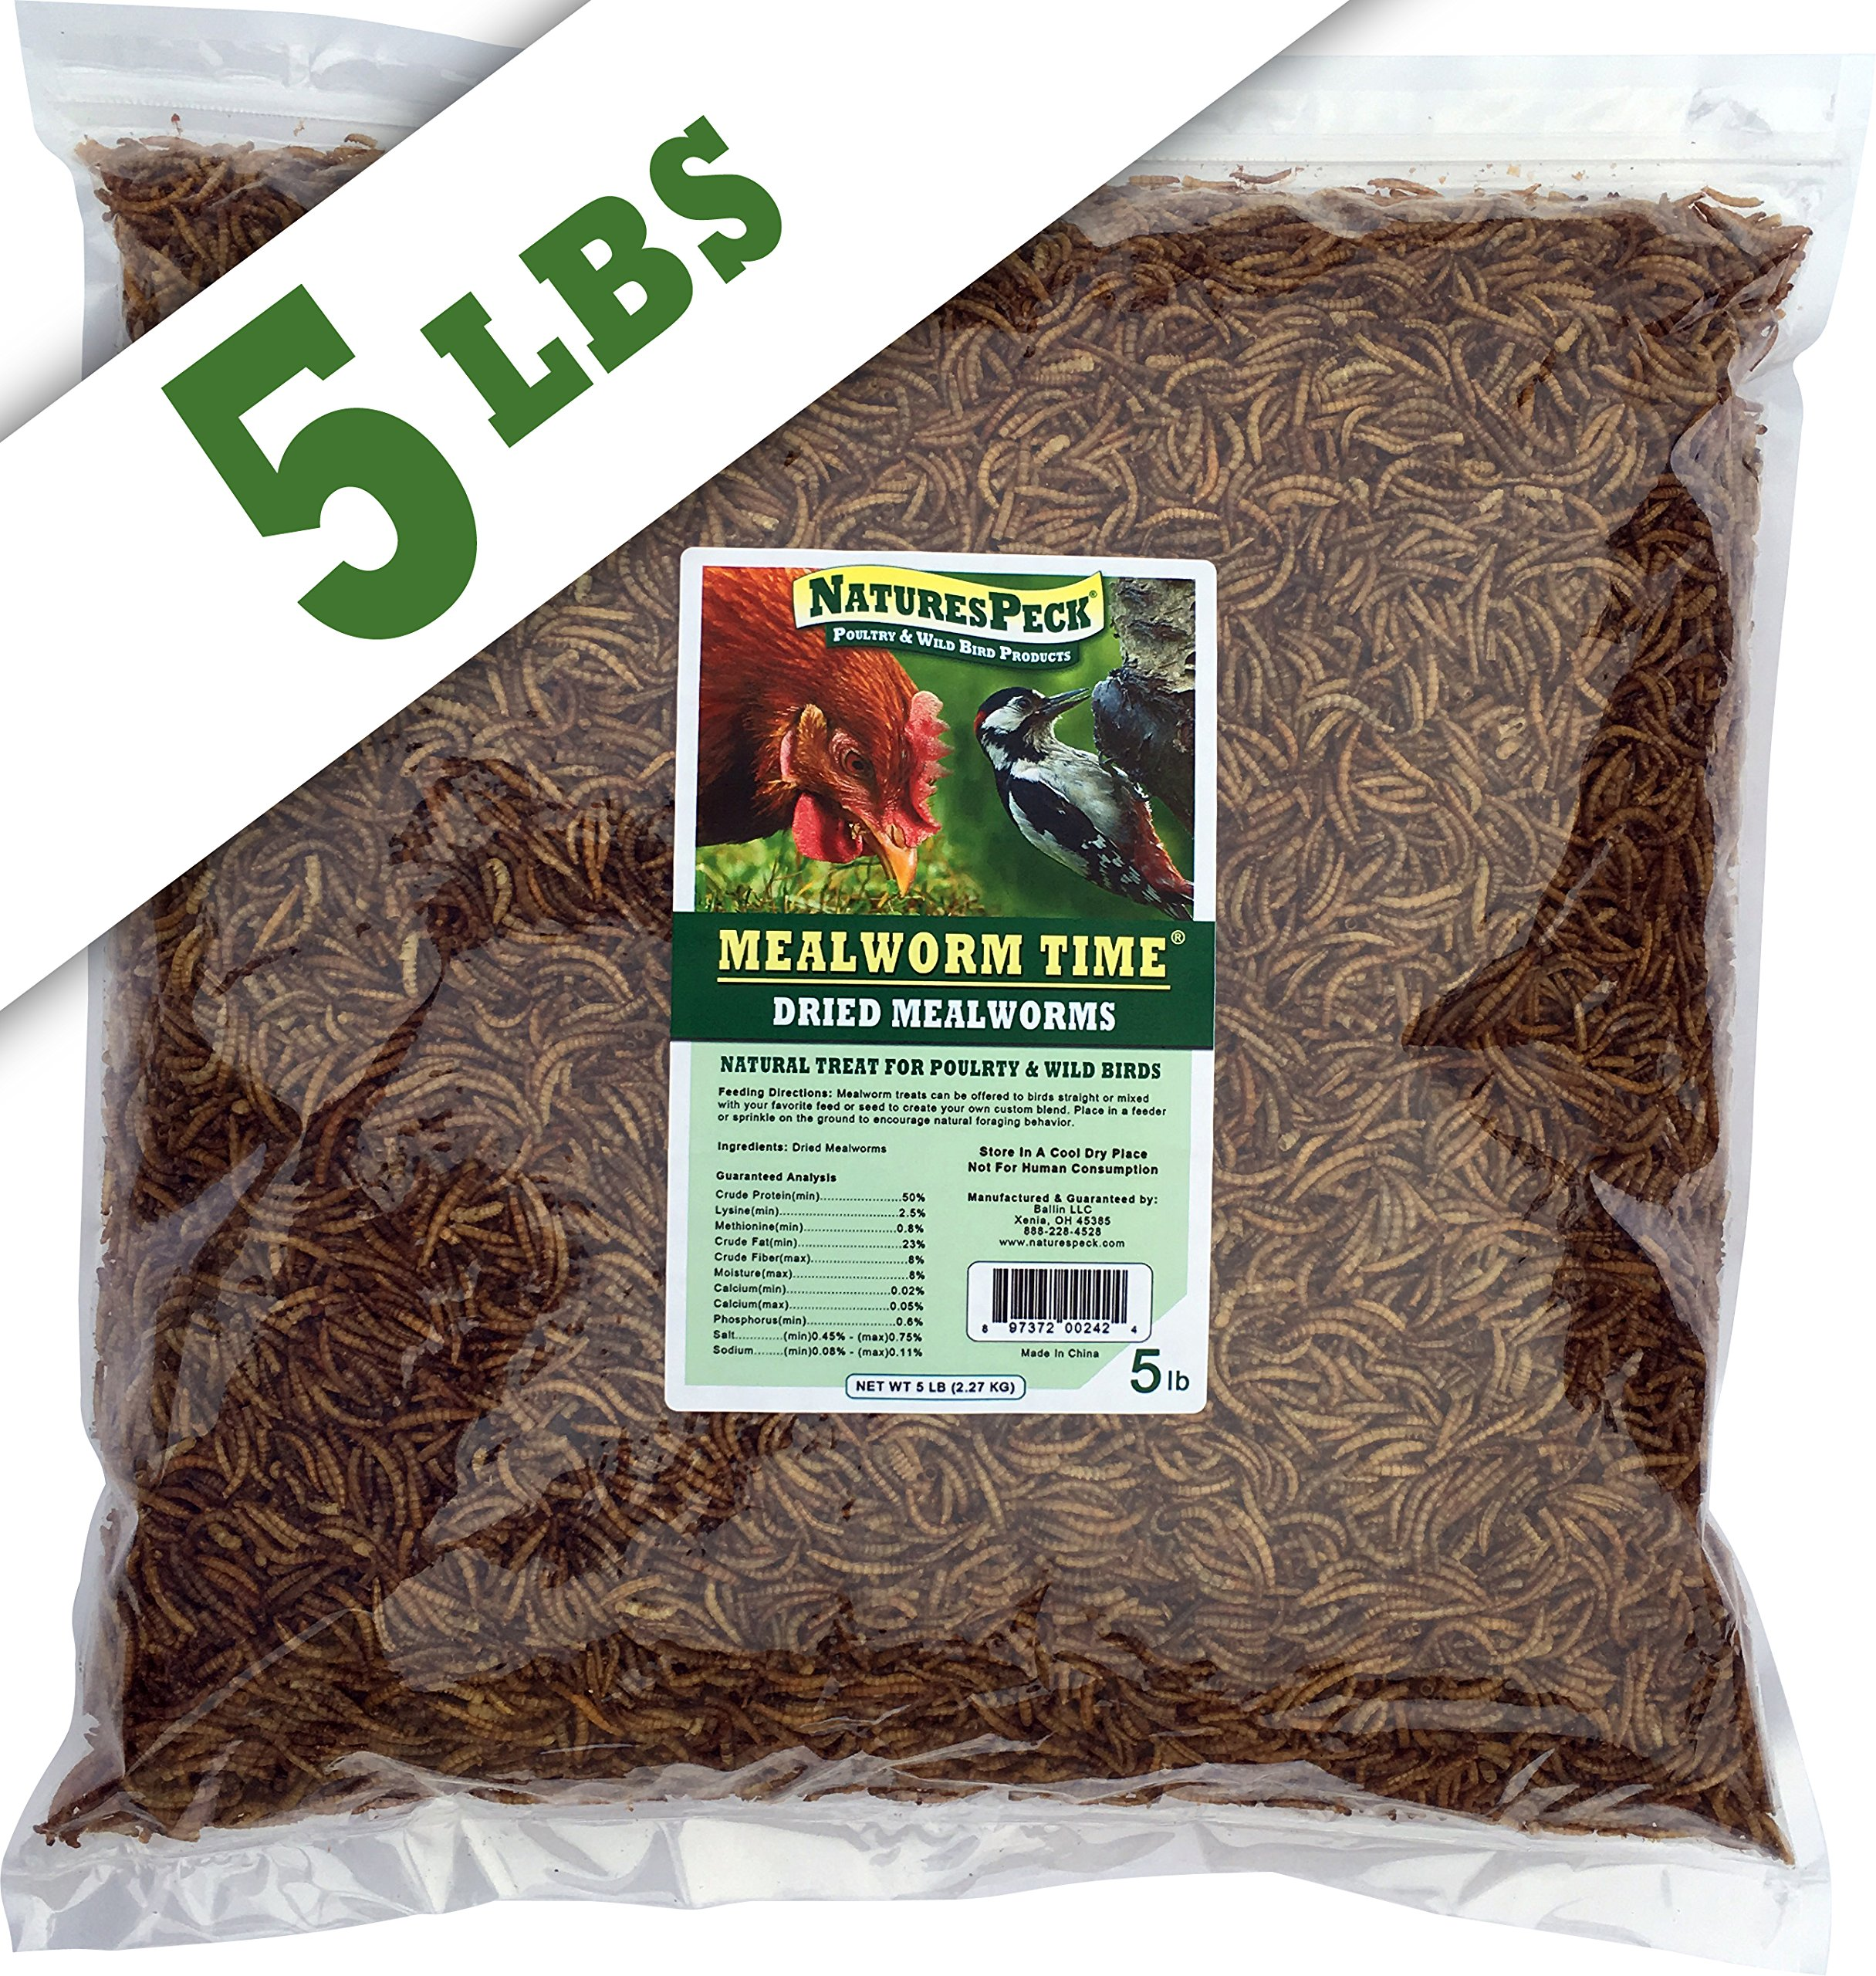 NaturesPeck Mealworm Time Dried Mealworms from (5 lbs) - For Chickens & Wild Birds by NaturesPeck